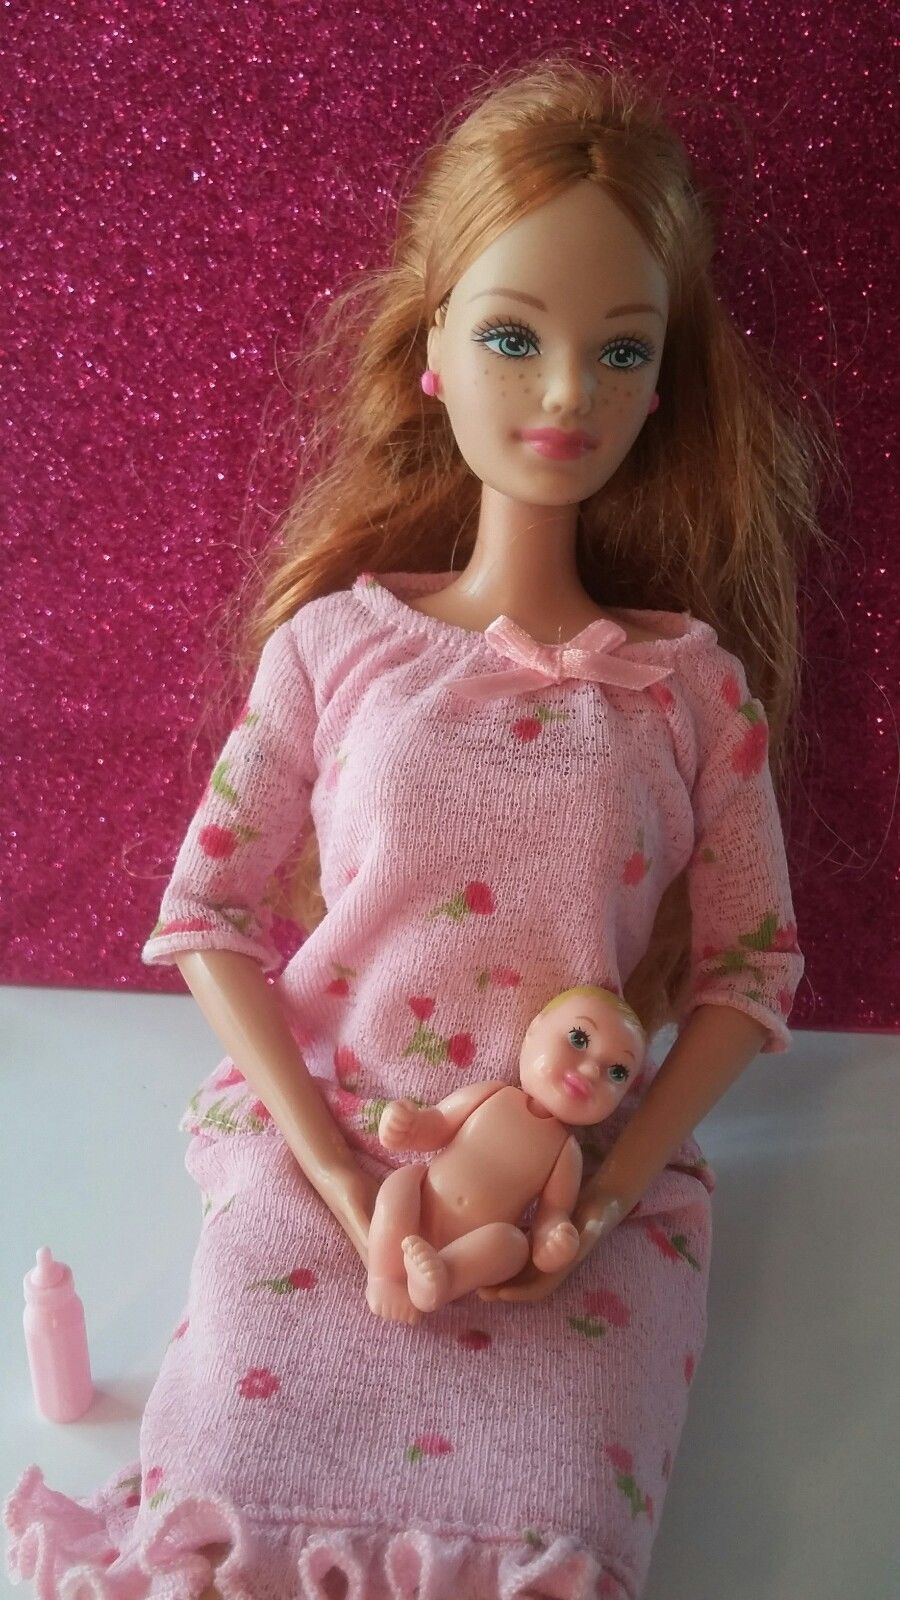 Site, with pregnant barbie doll apologise, that